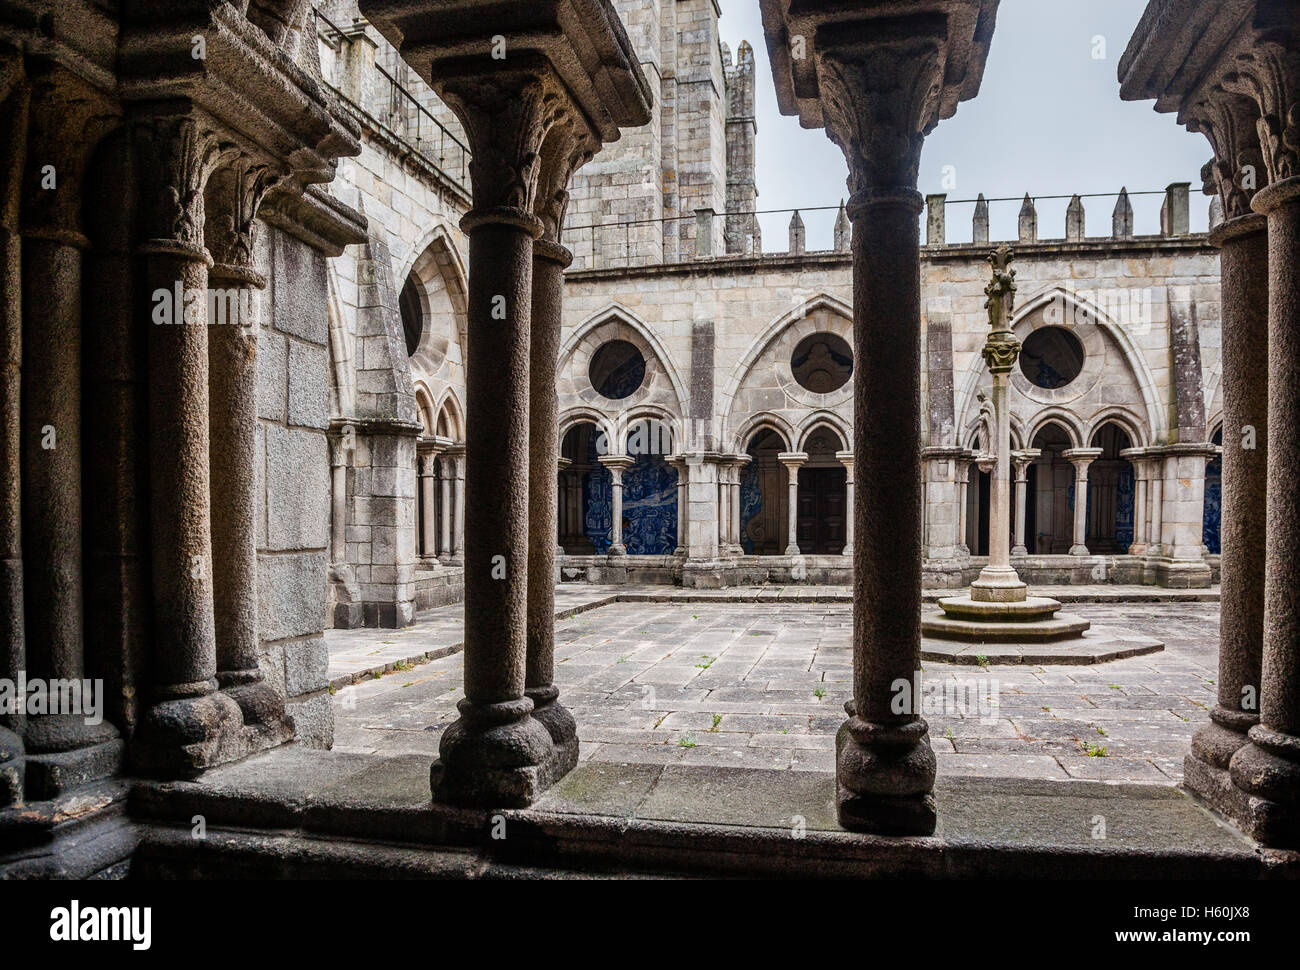 Portugal, Region Norte, Porto, arcaded gothic cloister of Porto Cathedral, Se do Porto, Cathedral of the Assumtion - Stock Image